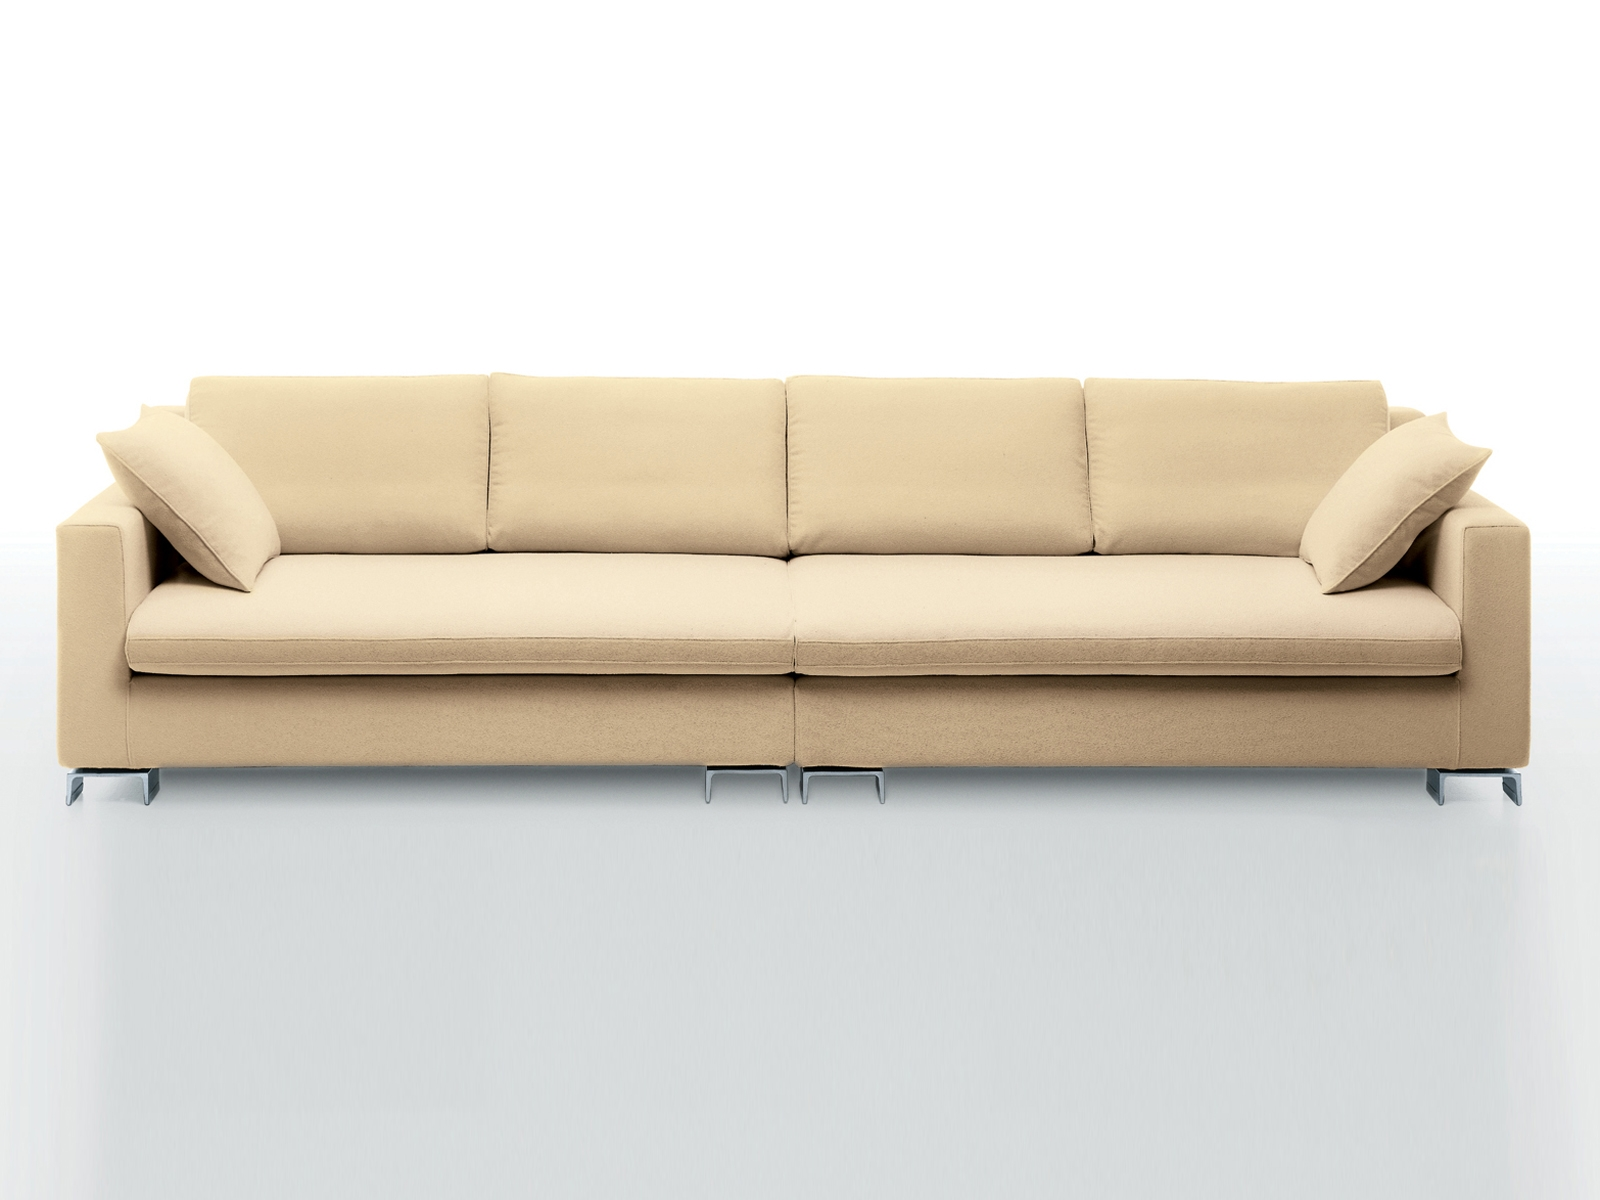 Design 4 Seater Sofas Archiproducts With Regard To 4 Seater Sofas (View 8 of 15)